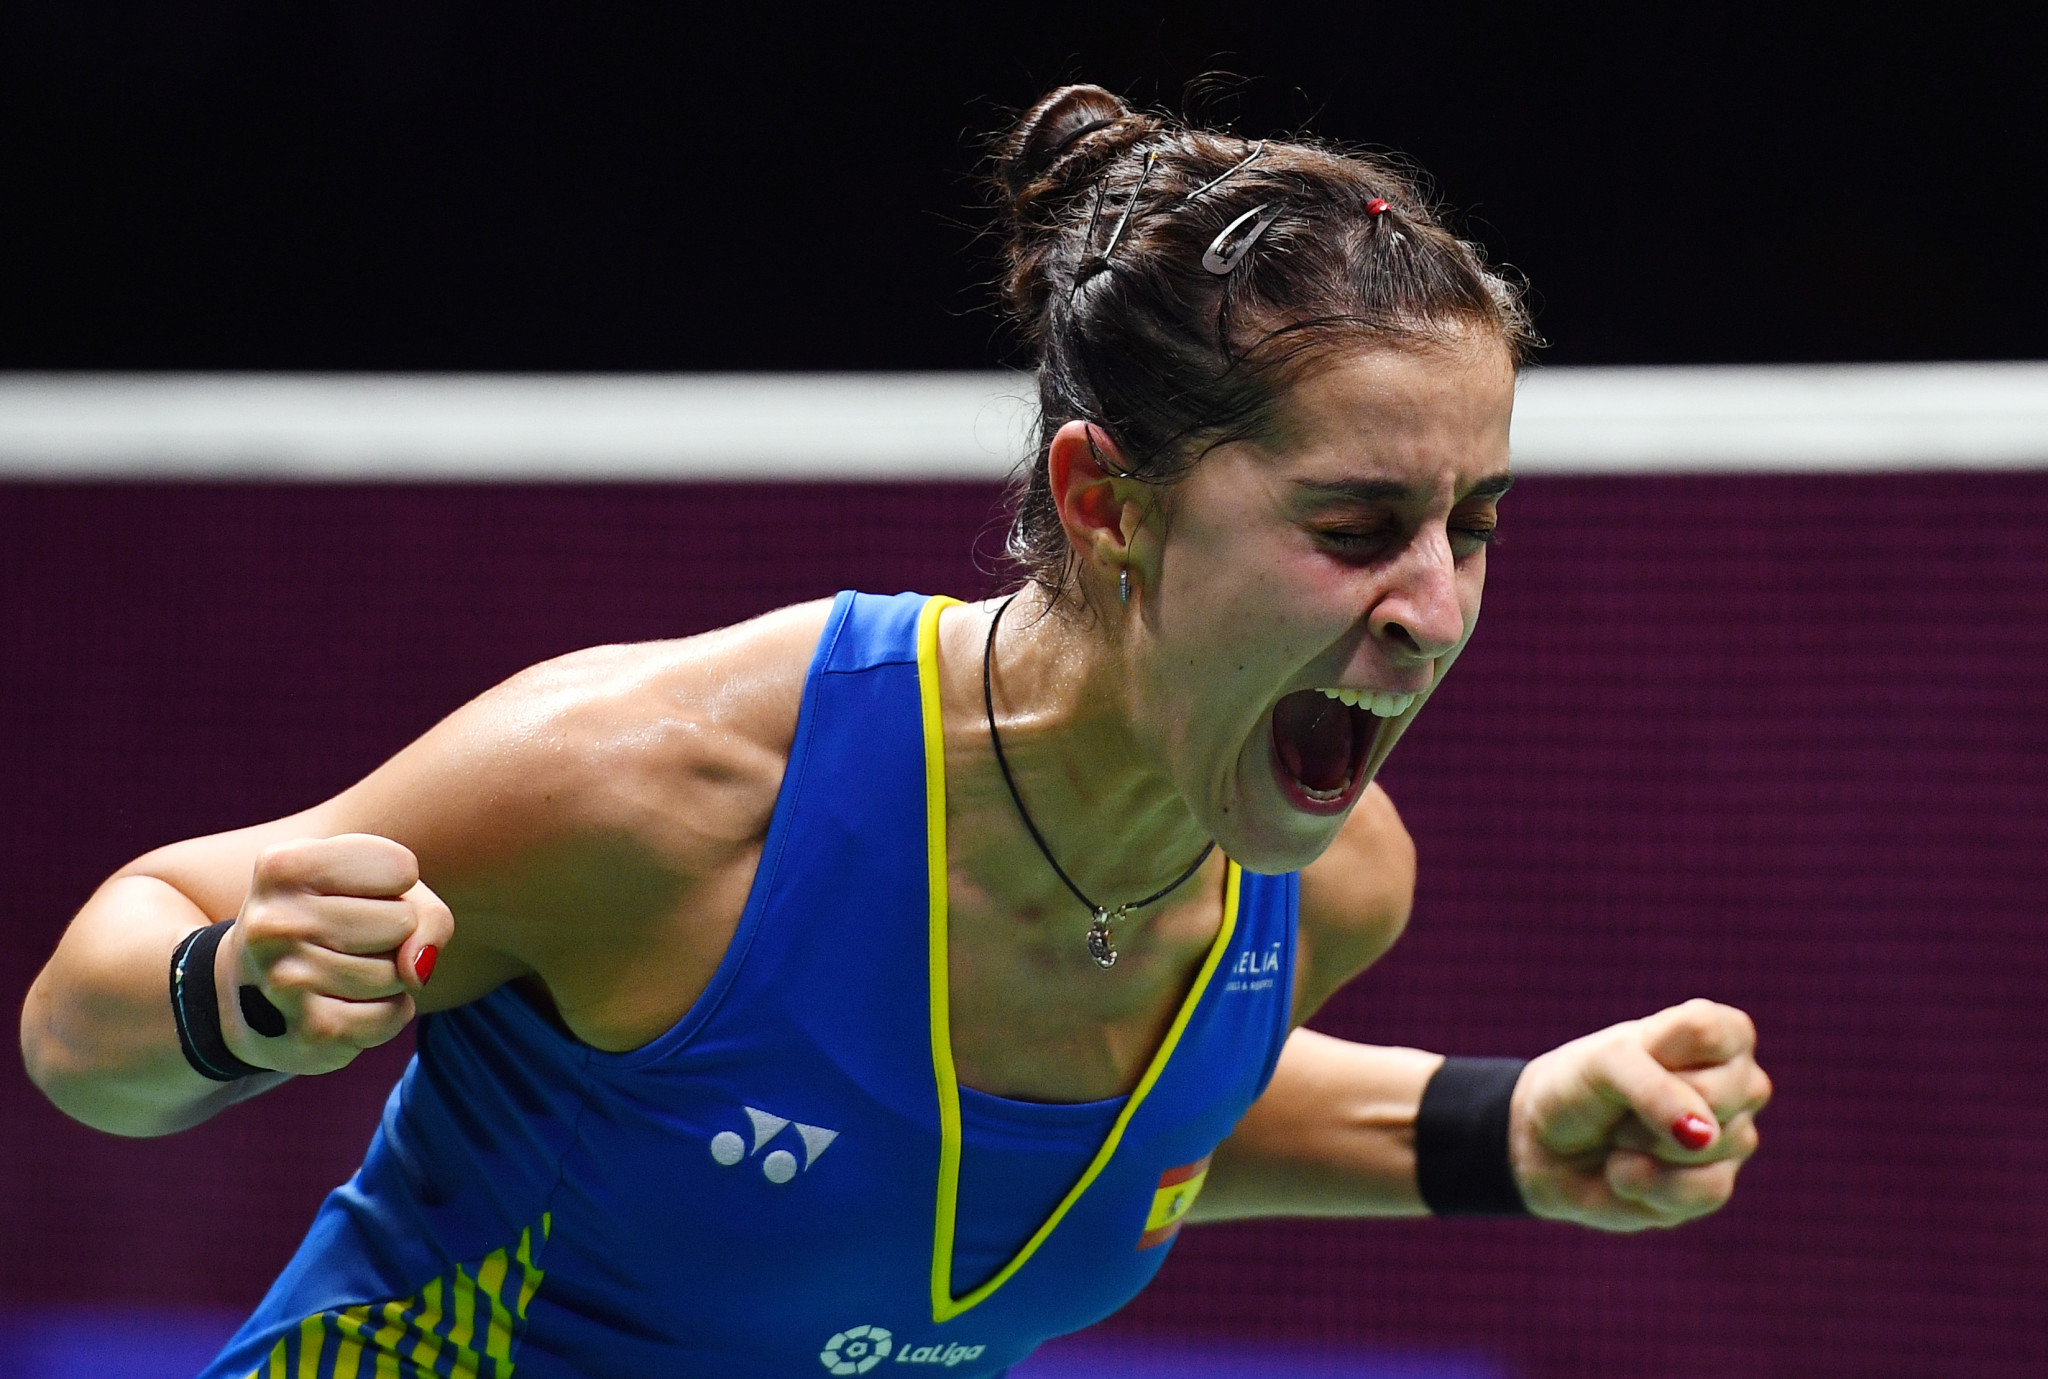 The women's world champion Carolina Marin is also among the entries ©Getty Images